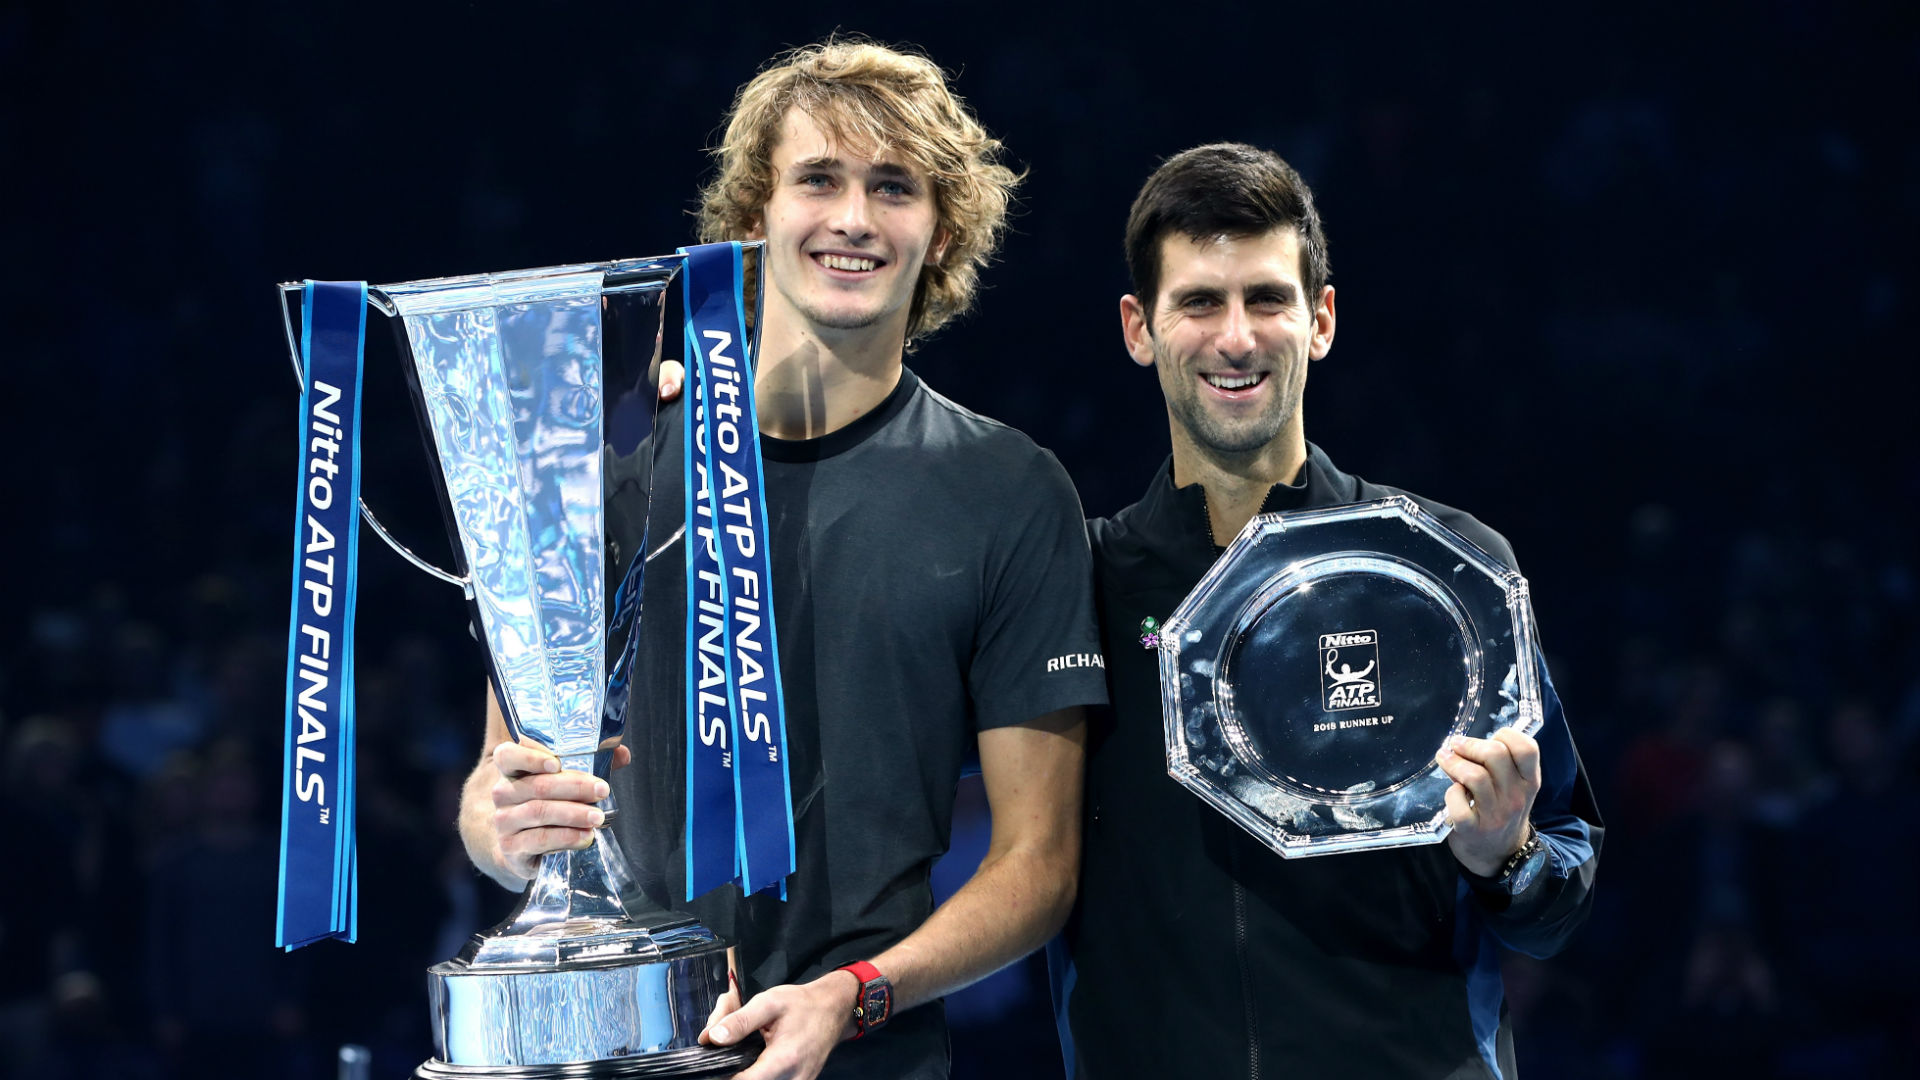 Alexander Zverev and Novak Djokovic at the 2018 ATP Finals